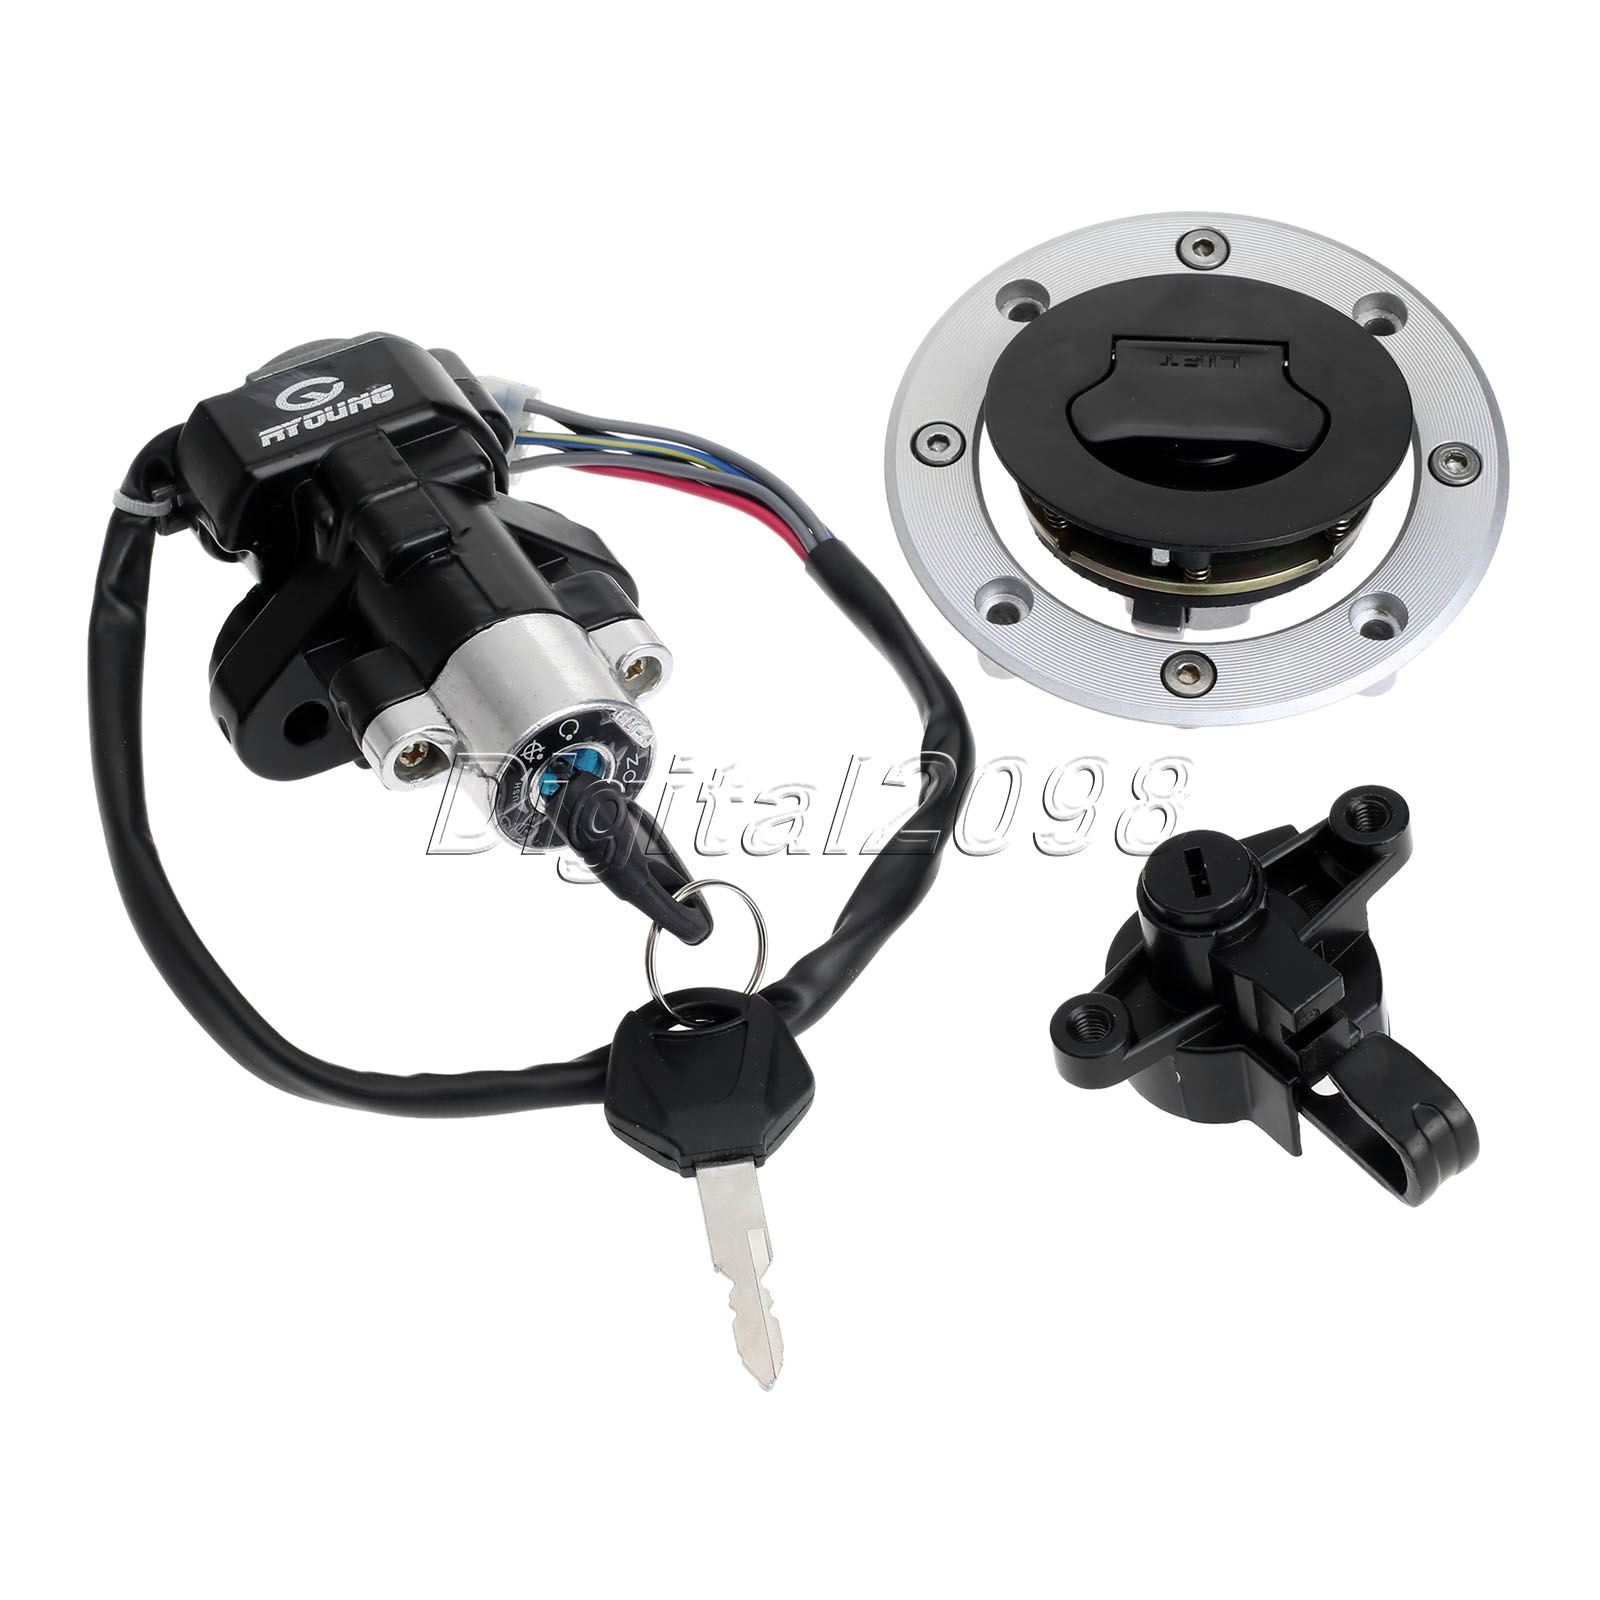 Ignition Switch Deutsch Alternator To Battery Wiring Diagram Online Buy Wholesale Moped From China